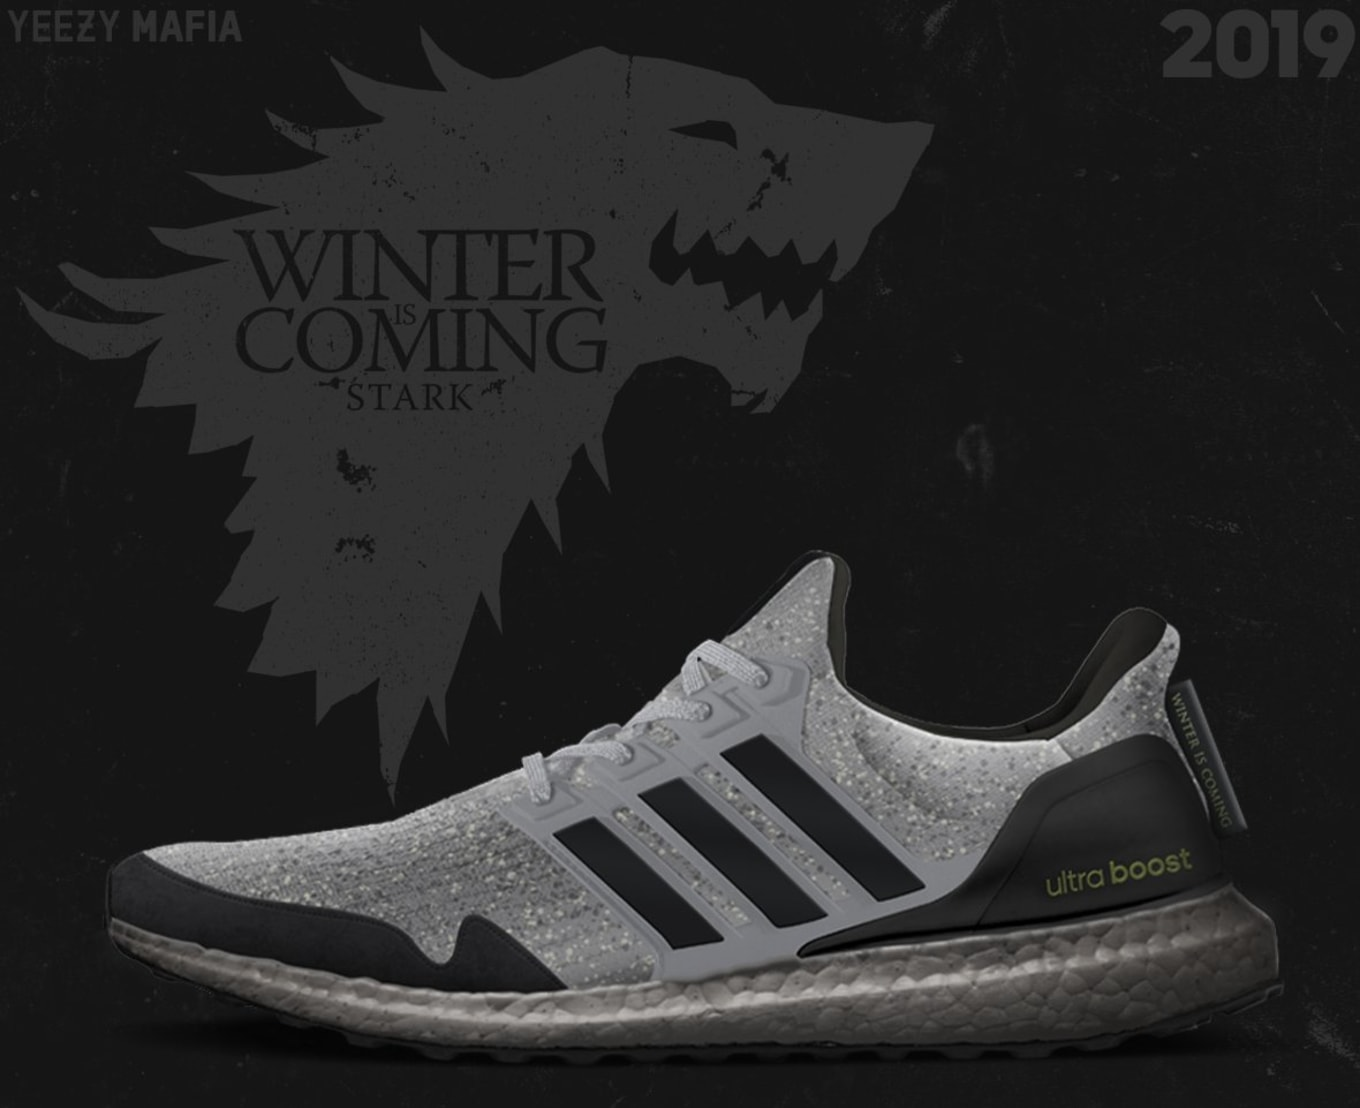 7d23869c342d6 Game of Thrones x Adidas Ultra Boost Sneaker Collaboration 2019 ...